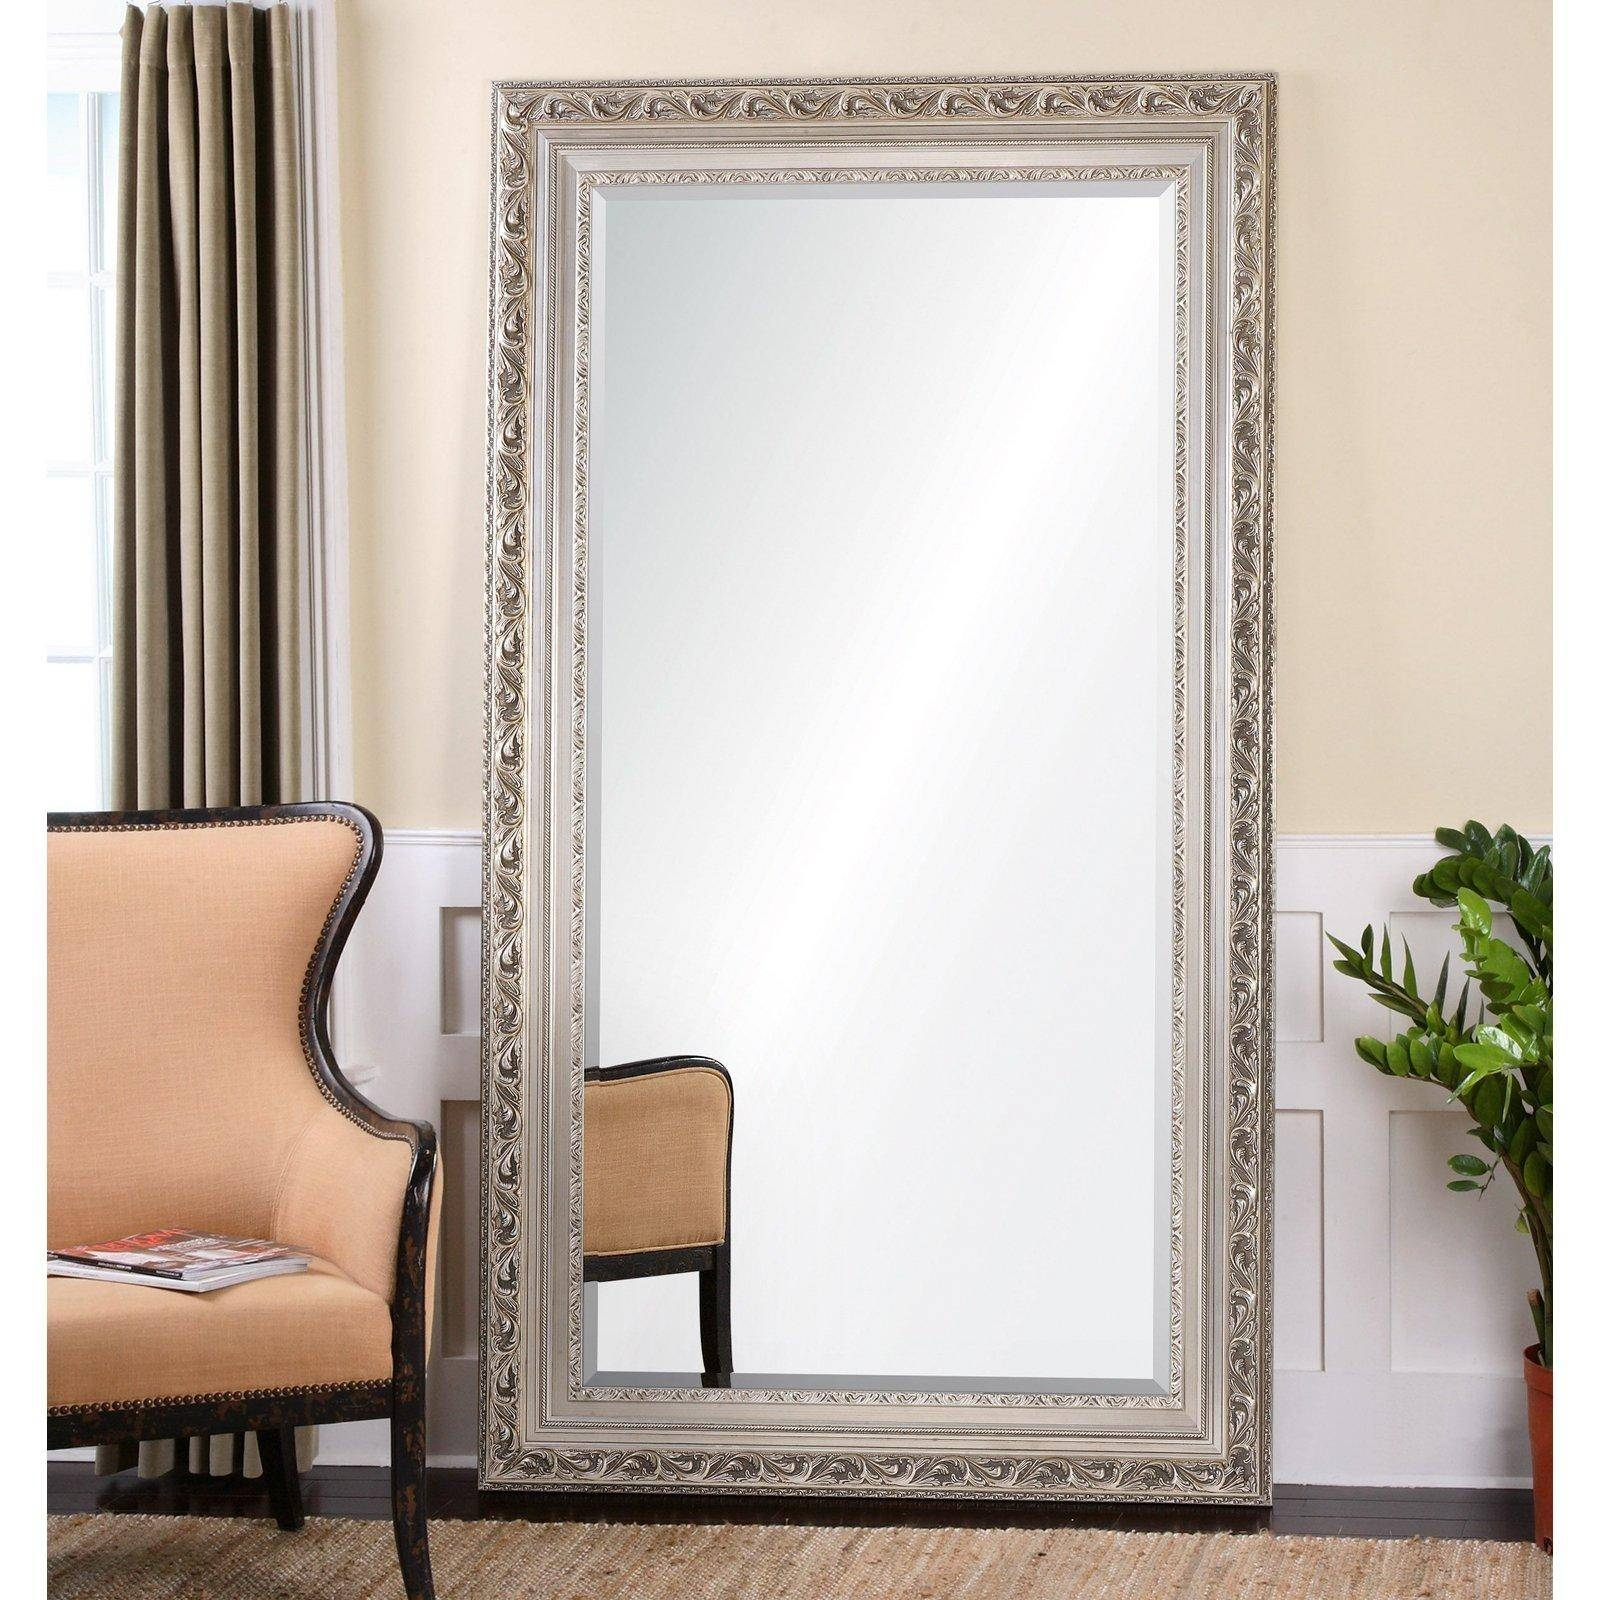 Mirror : Cheap Extra Large Floor Mirrors | Floor Decoration for Extra Large Full Length Mirrors (Image 8 of 15)